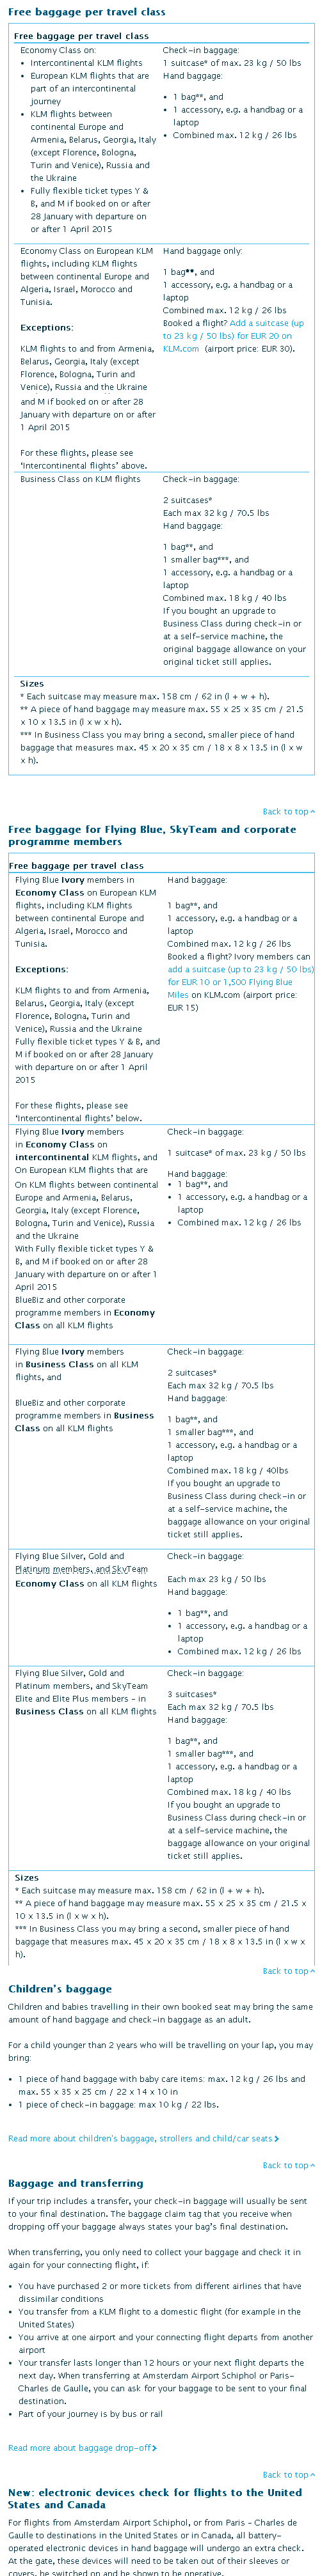 Klm airlines baggage allowance